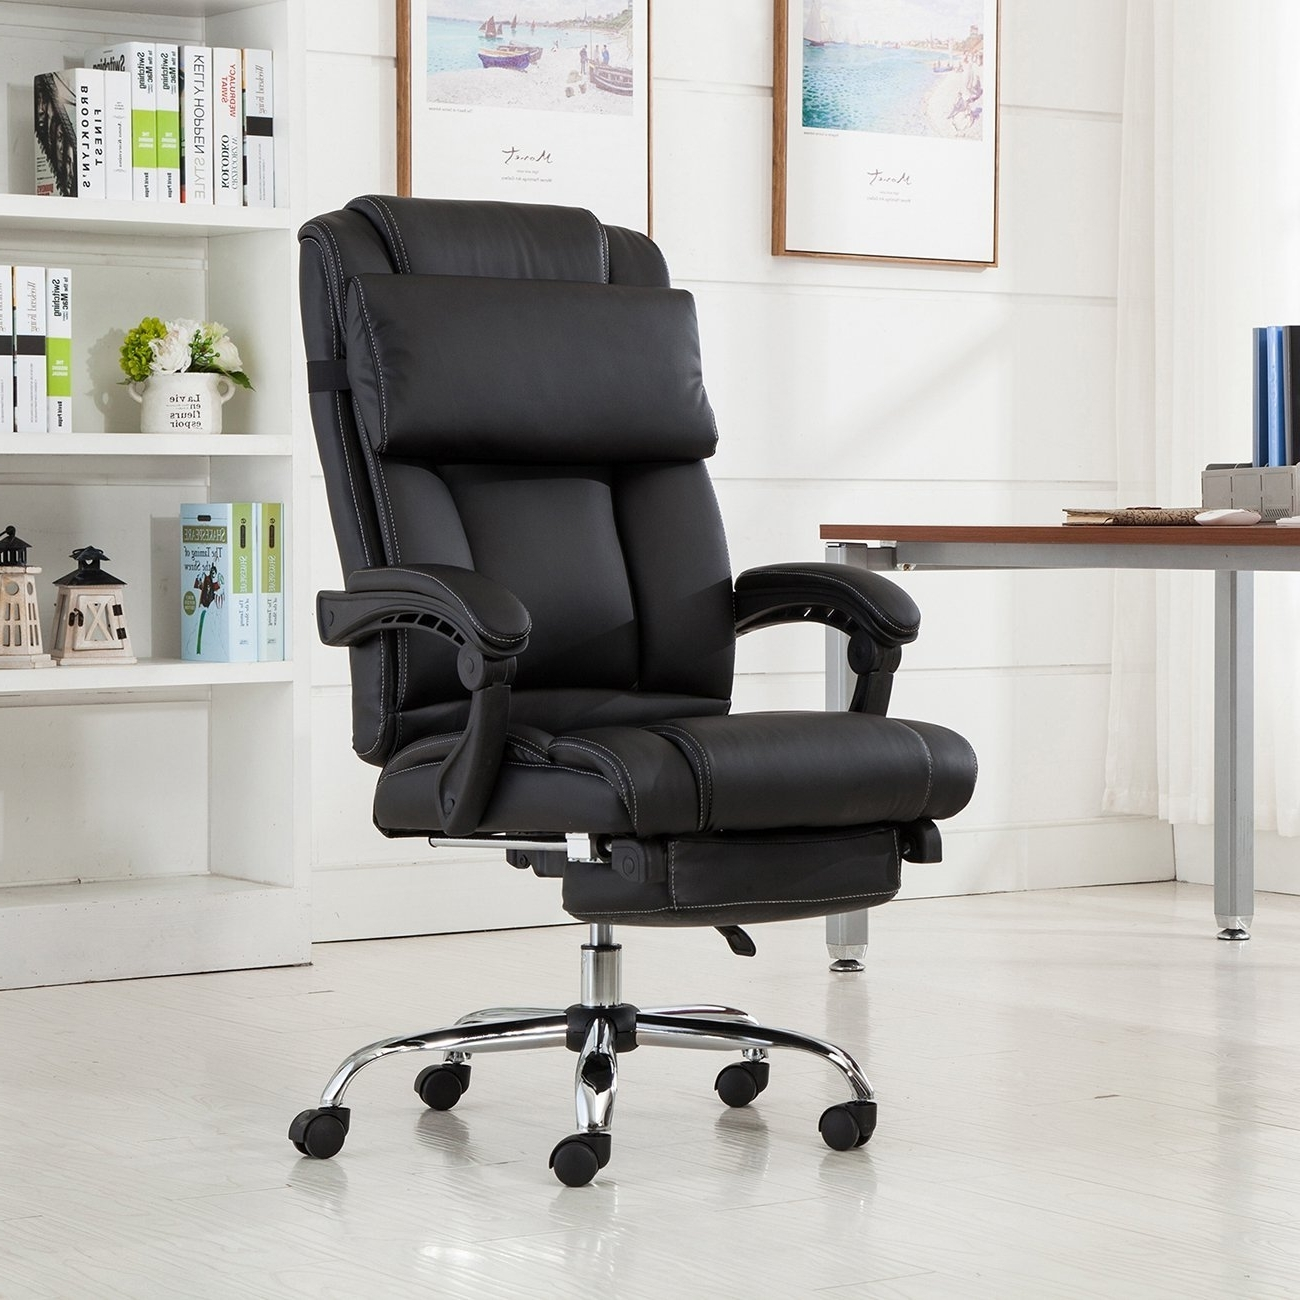 Widely Used Top 10 Reclining Office Chairs Reviewed (View 3 of 20)